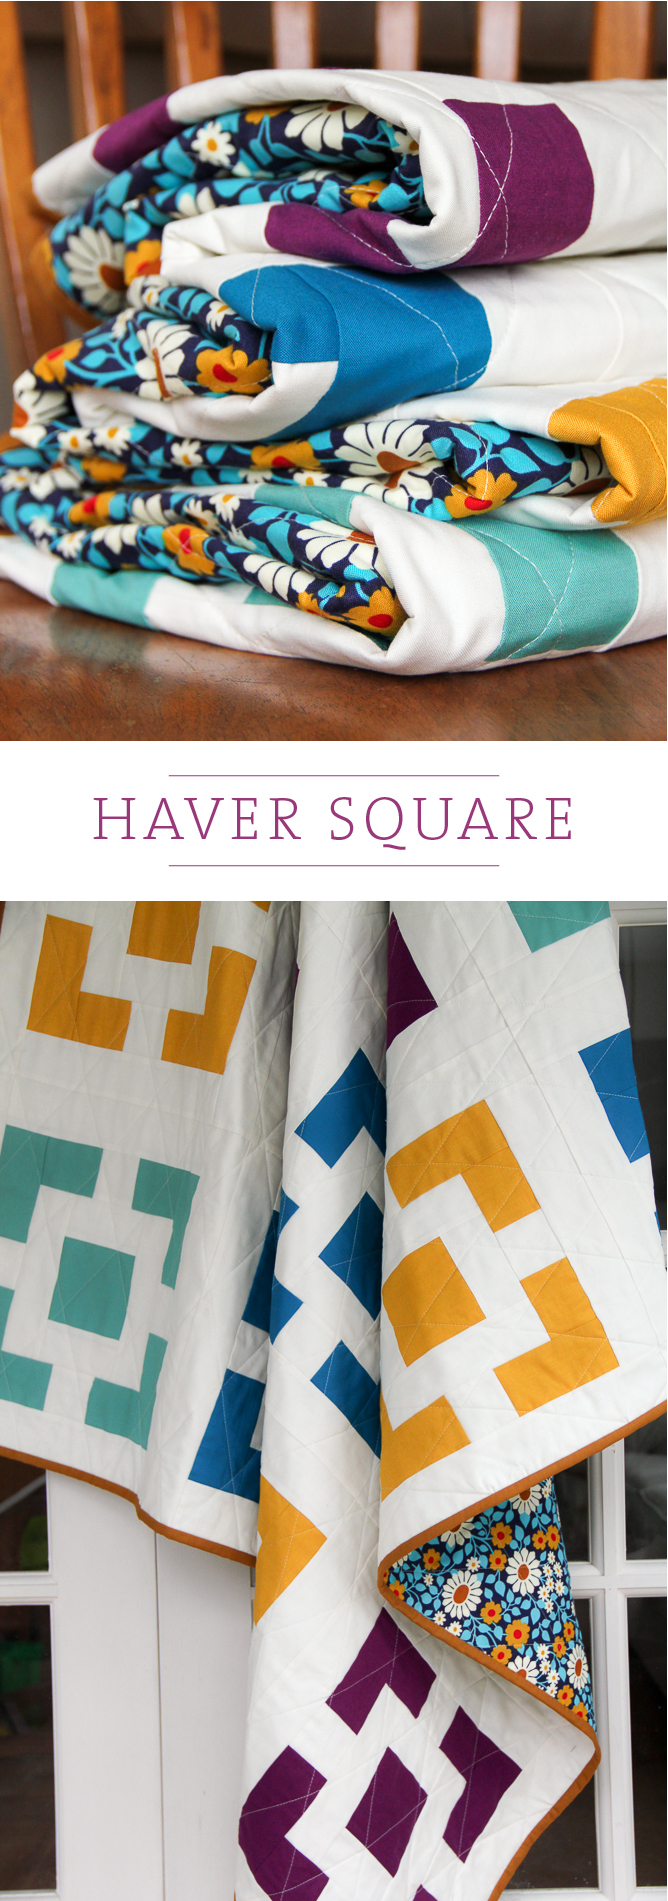 Haver Square, a mid-century inspired quilt | Village Bound Quilts